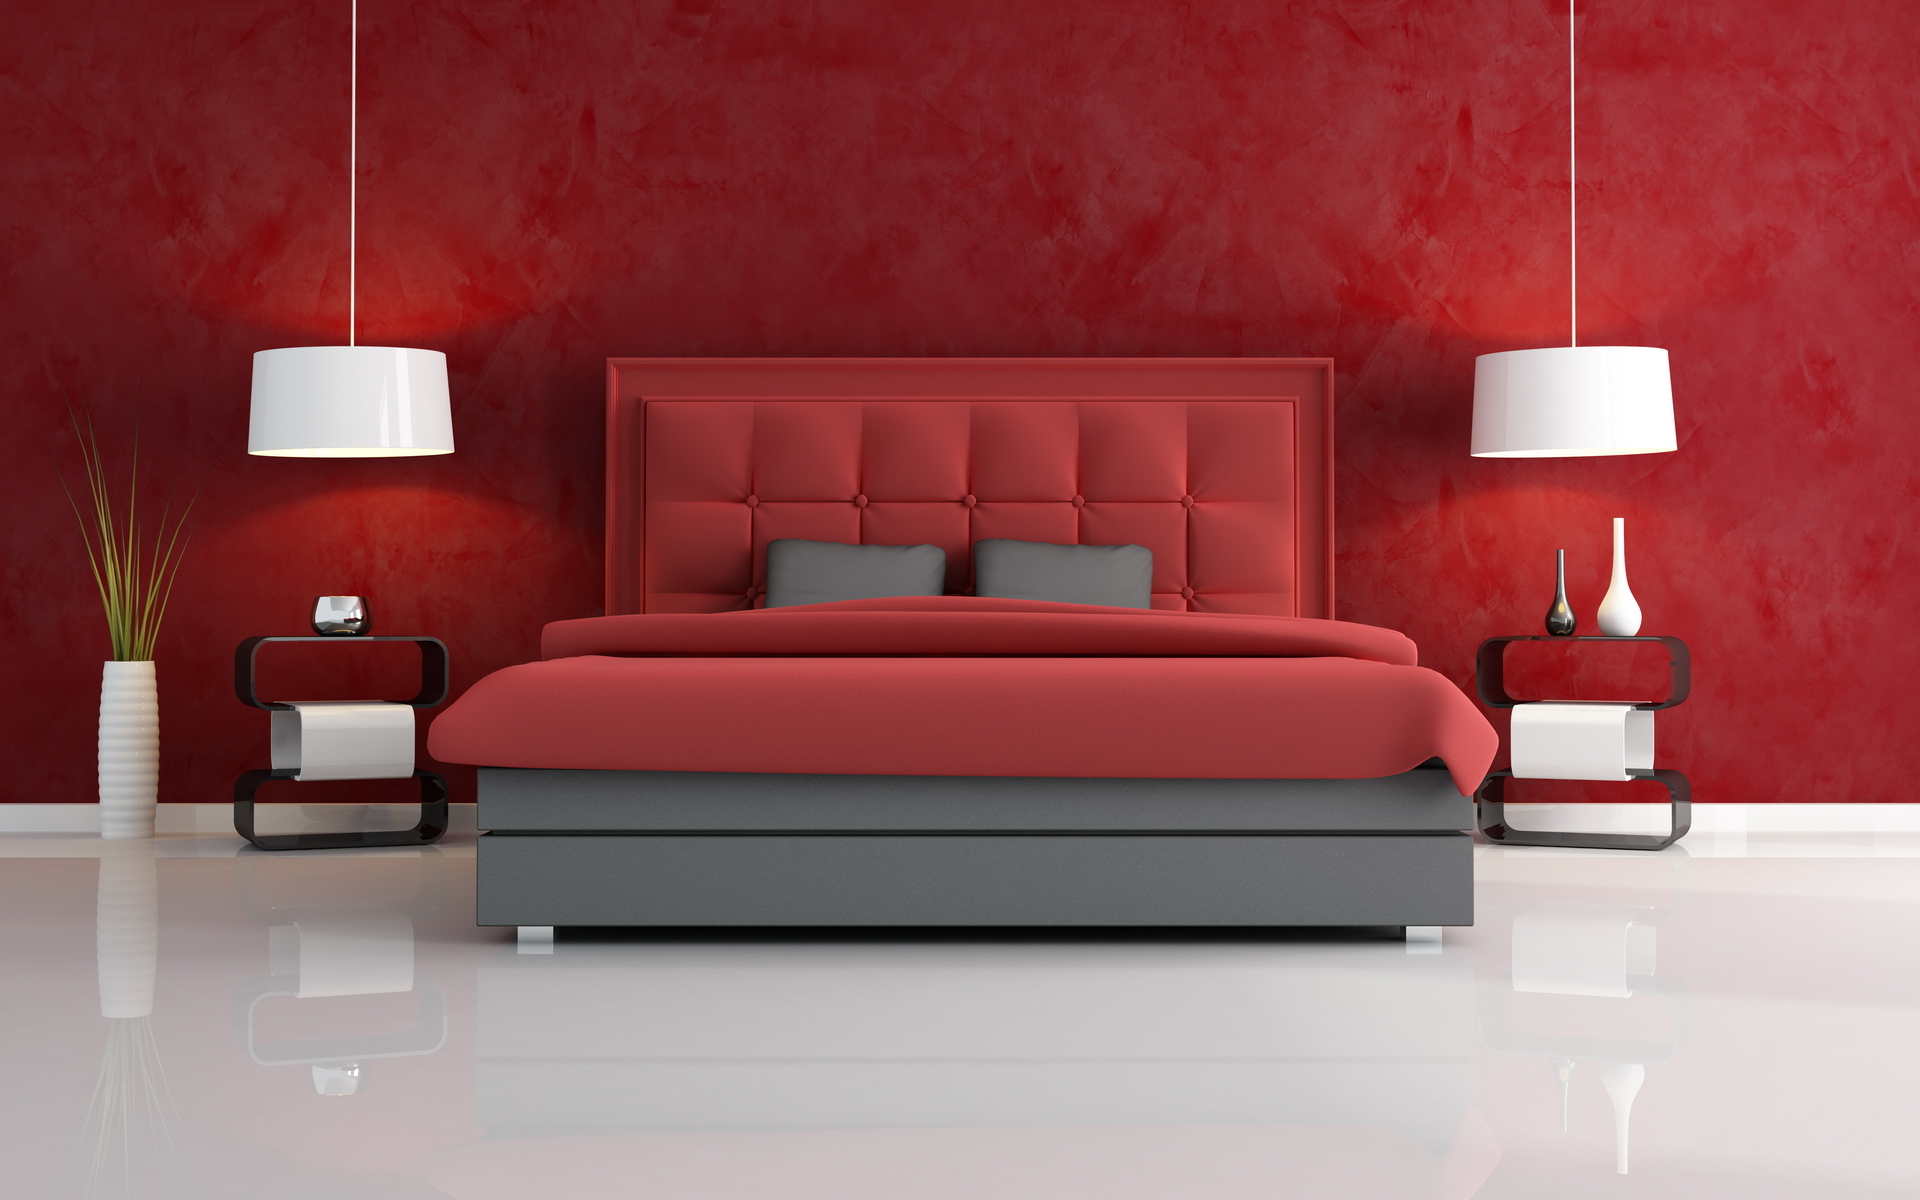 luxury red bedroom with headrest of the bed quilted - rendering